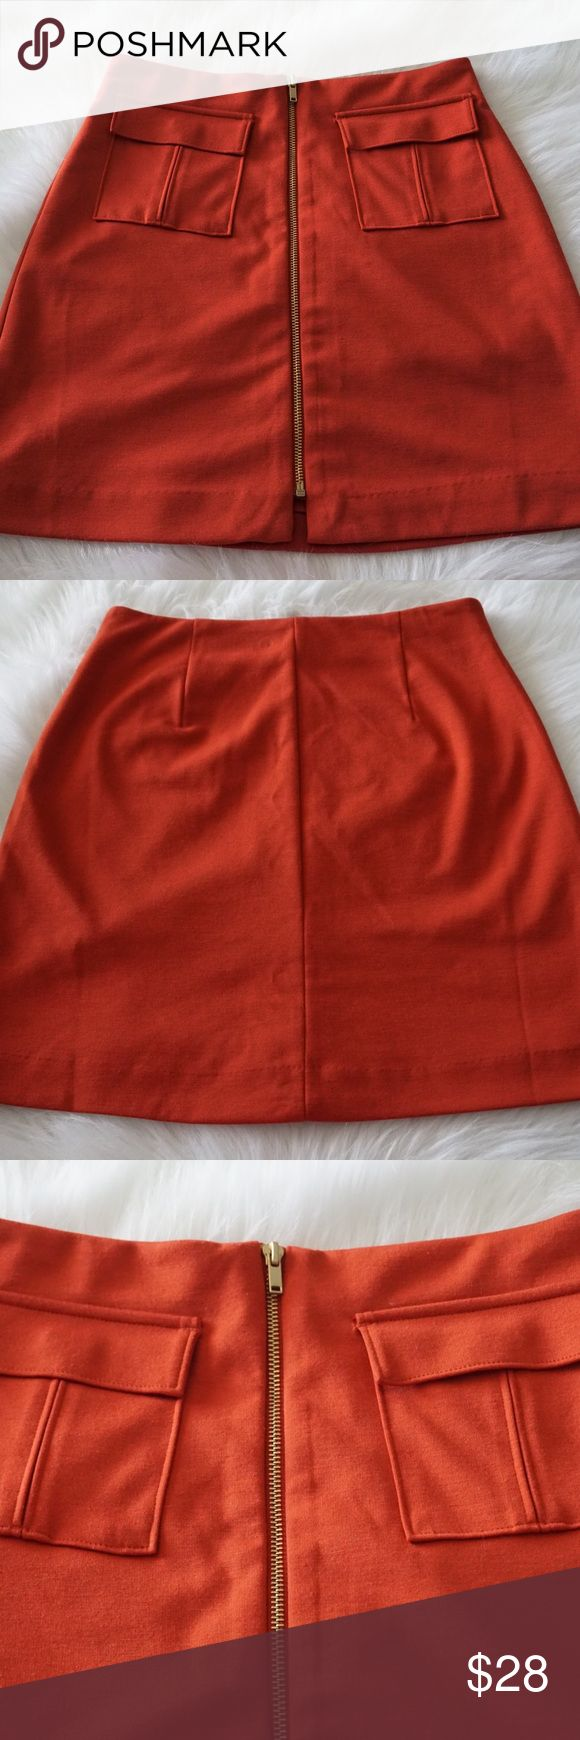 Banana Republic Burnt Orange Ponte Military Skirt 🔥Really cute ponte military inspired Skirt! Love the burnt orange color, my favorite color! Front zipper and two flap pockets. Great for the summer time and perfect for the fall too with tights! Measurements: waist- 14 inches across, top to bottom- 17.5 inches from center.🚫 trades!🔥 Banana Republic Skirts Mini